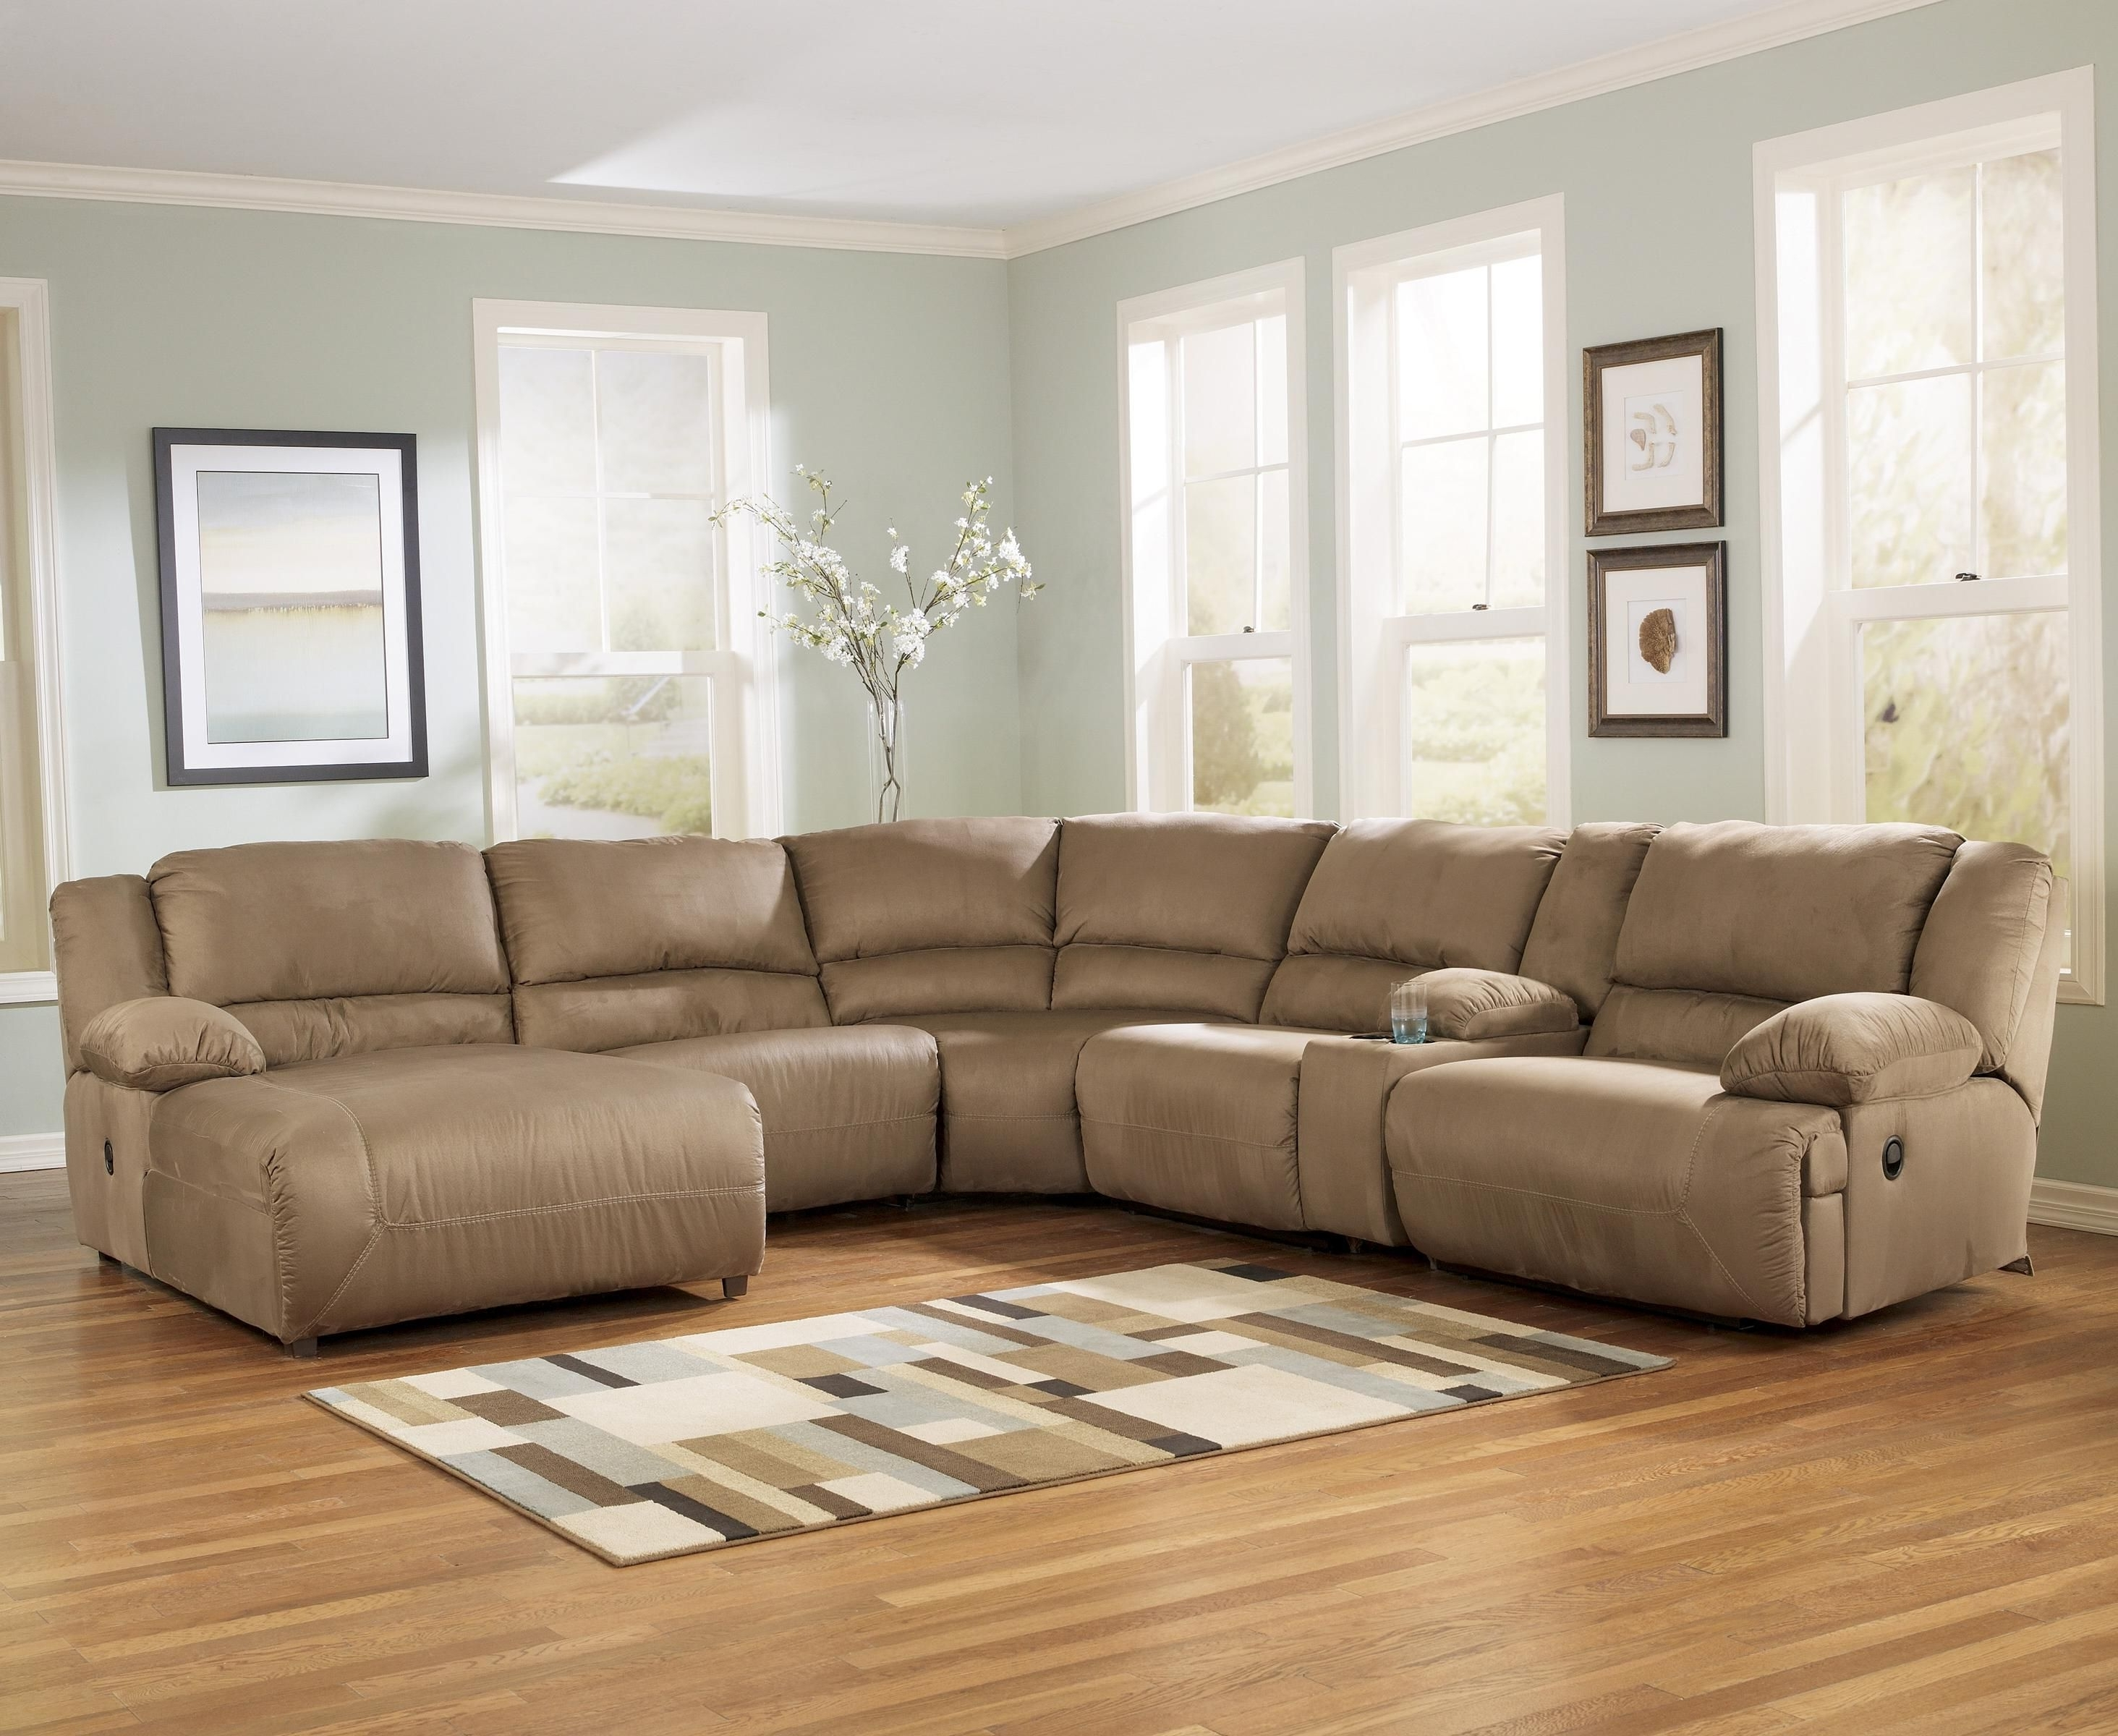 Hogan – Mocha 6 Piece Motion Sectional With Right Chaise And For Most Popular Harrisburg Pa Sectional Sofas (View 4 of 15)